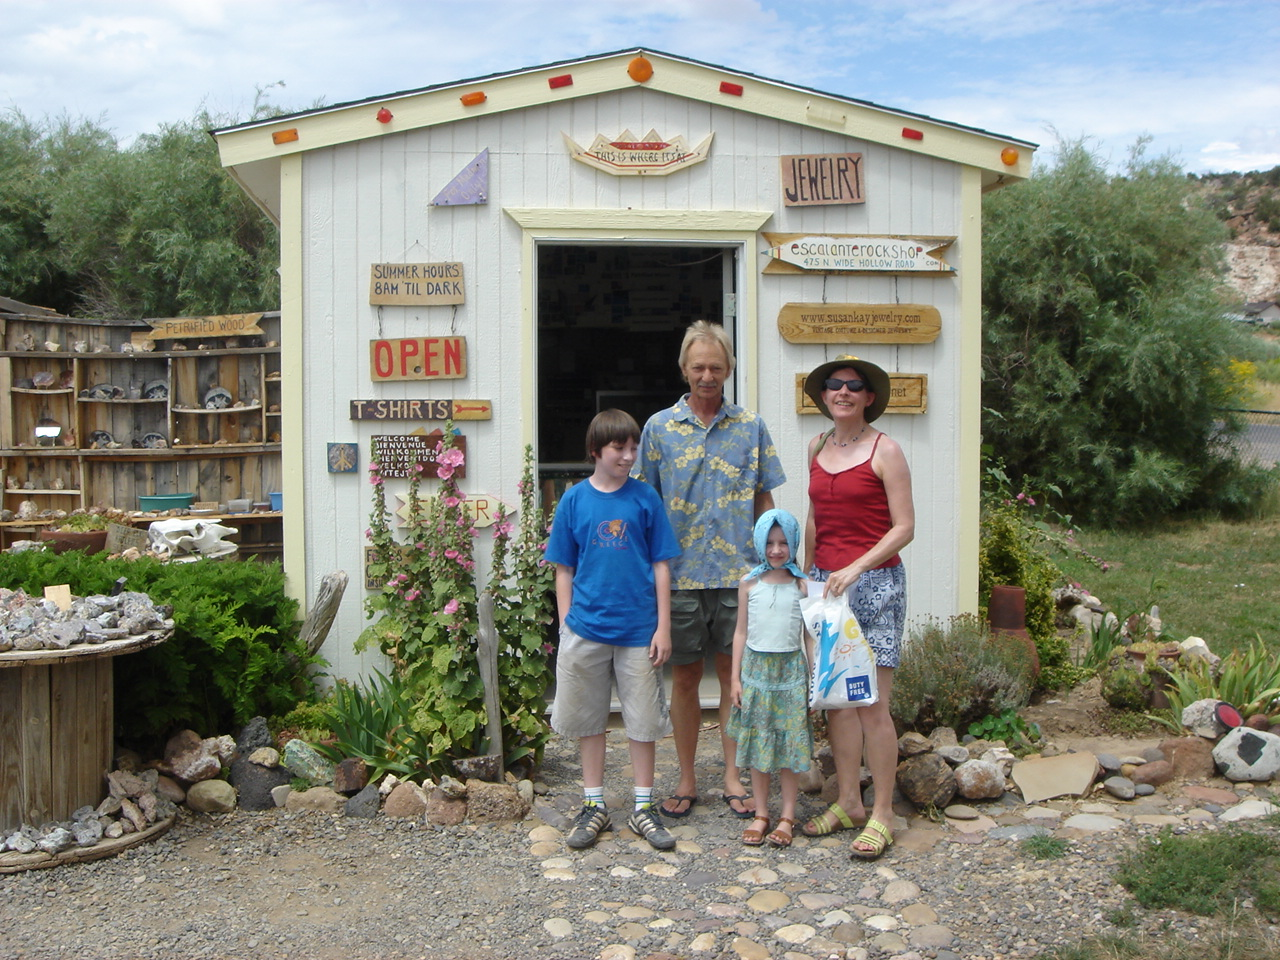 Escalante Rock Shop Visitors